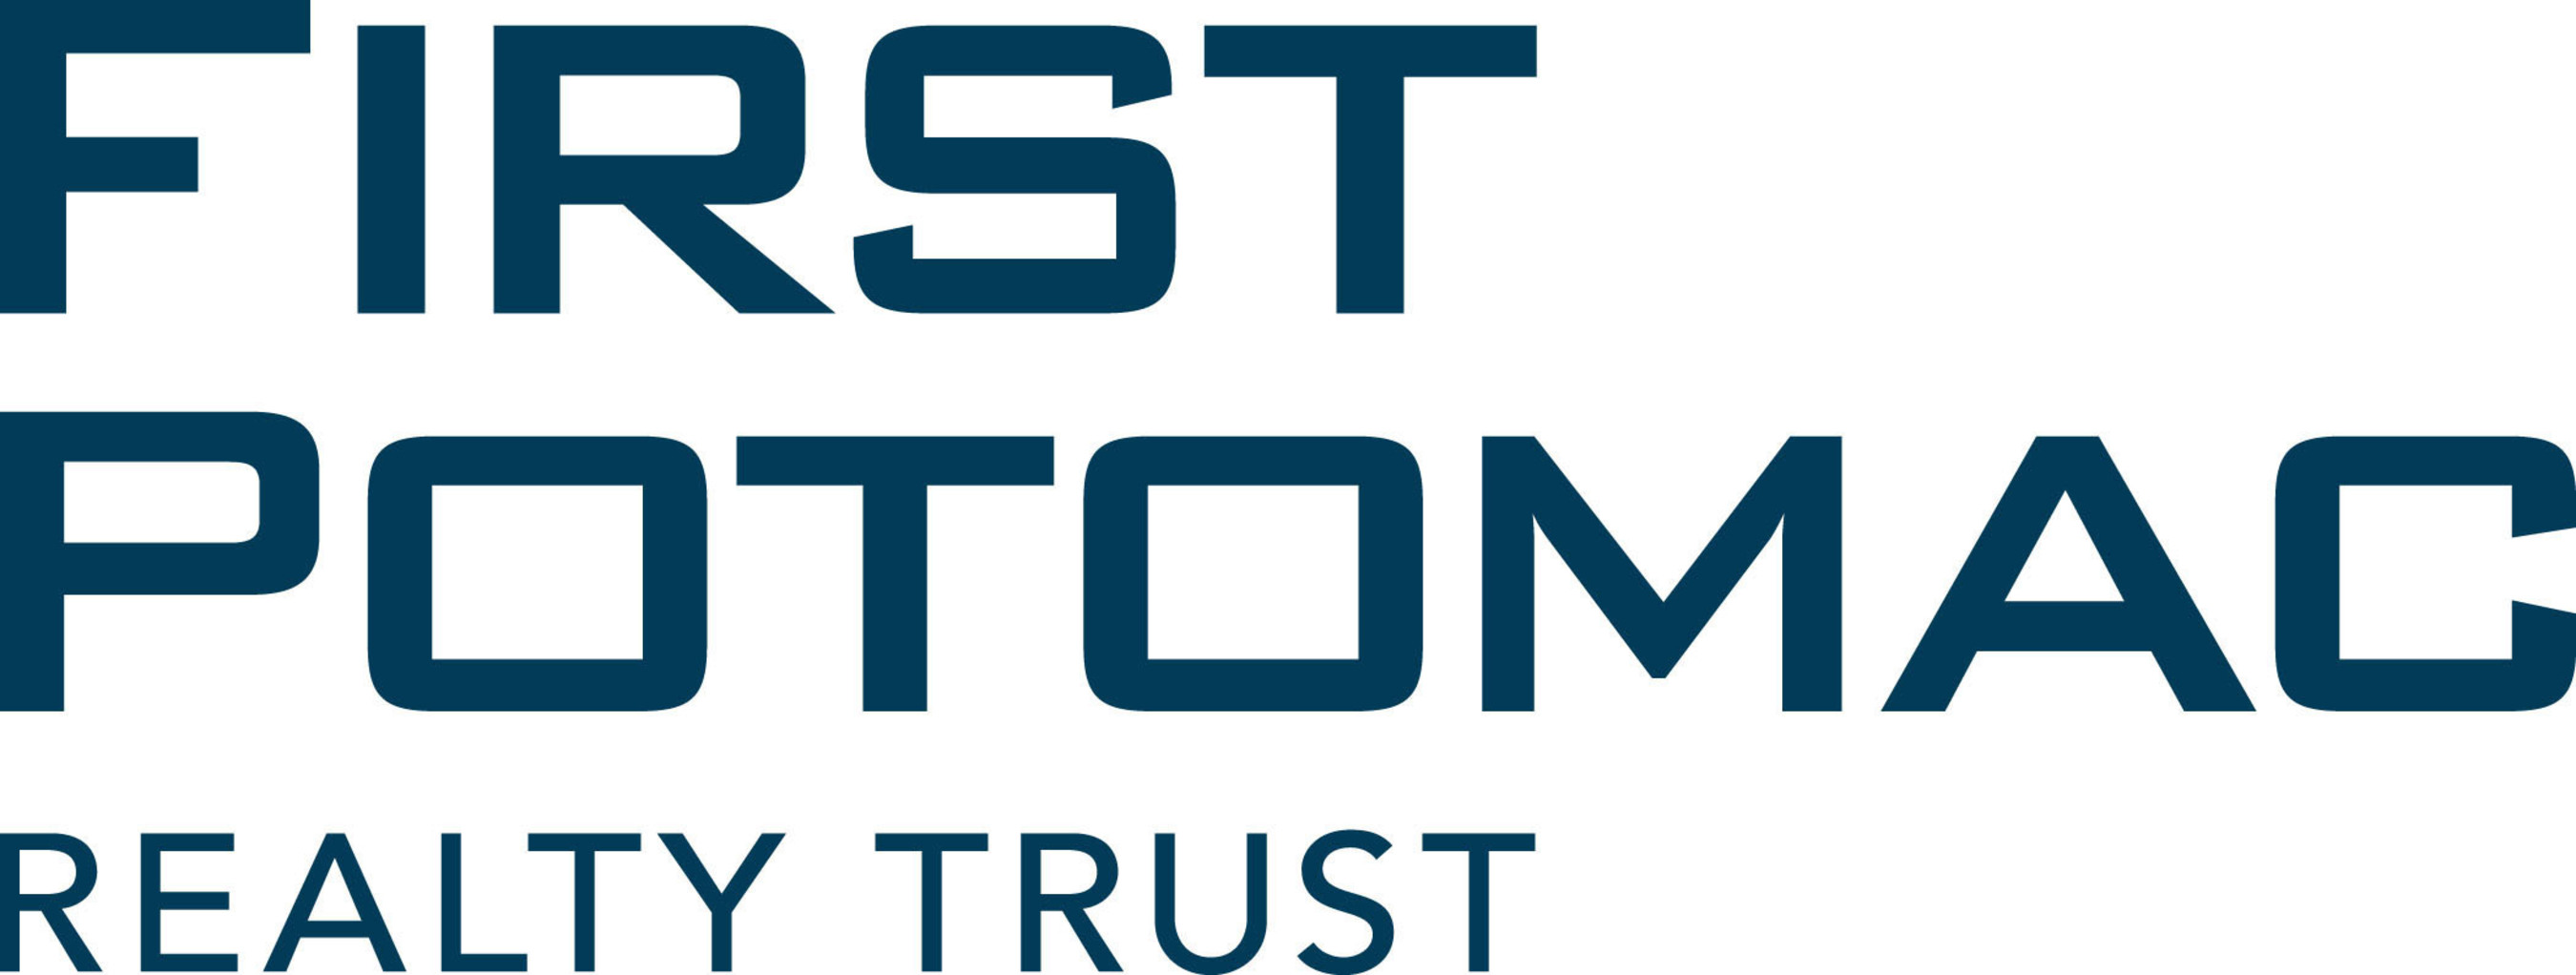 First Potomac Realty Trust focuses on owning, operating, developing and redeveloping office and business park properties in the greater Washington, D.C. region. FPO shares are publicly traded on the New York Stock Exchange.